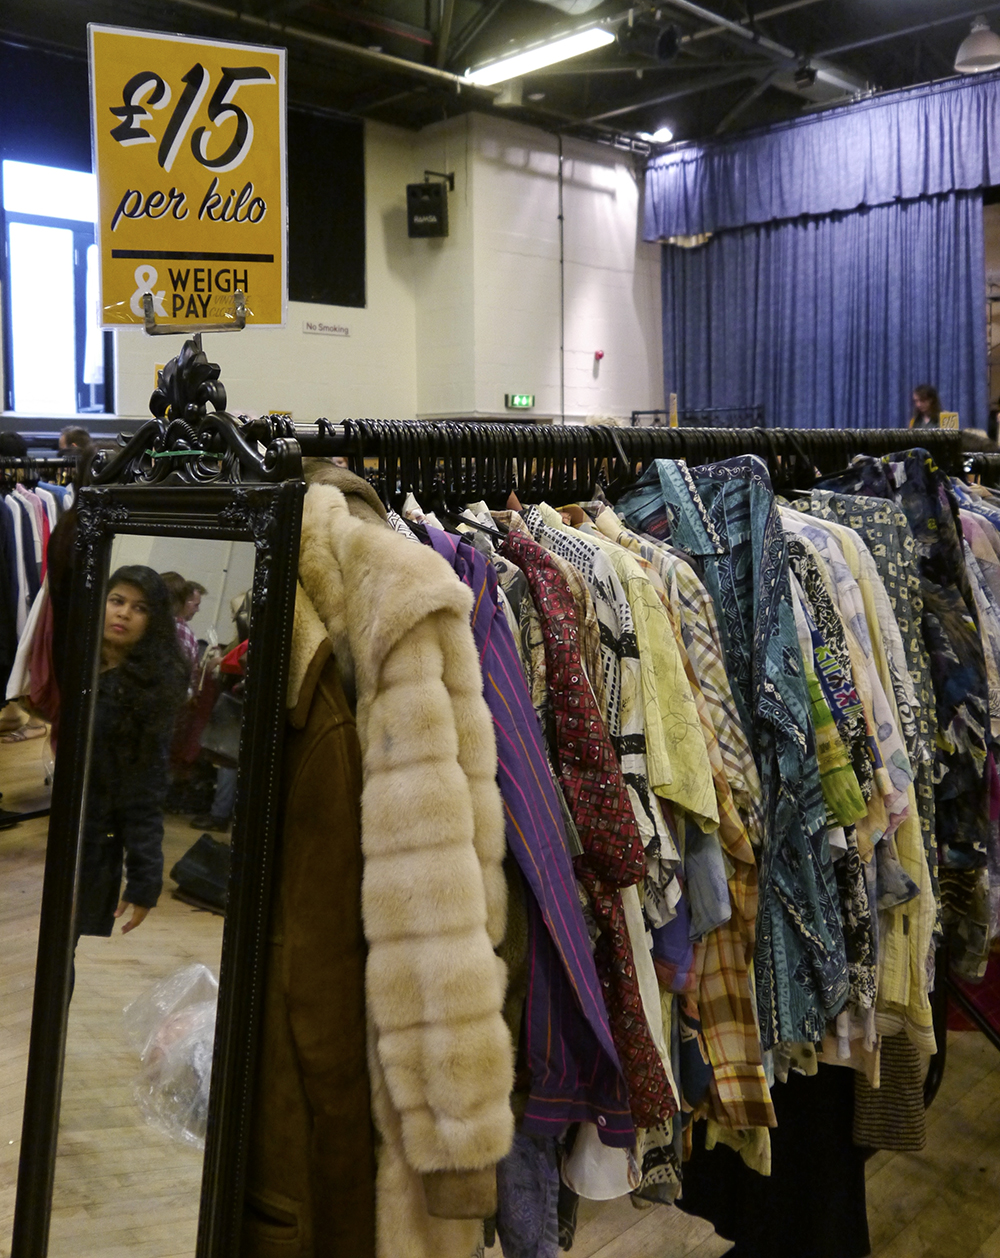 vintage kilo sale, vintage weigh and pay, pop up vintage fair, tips for shopping vintage